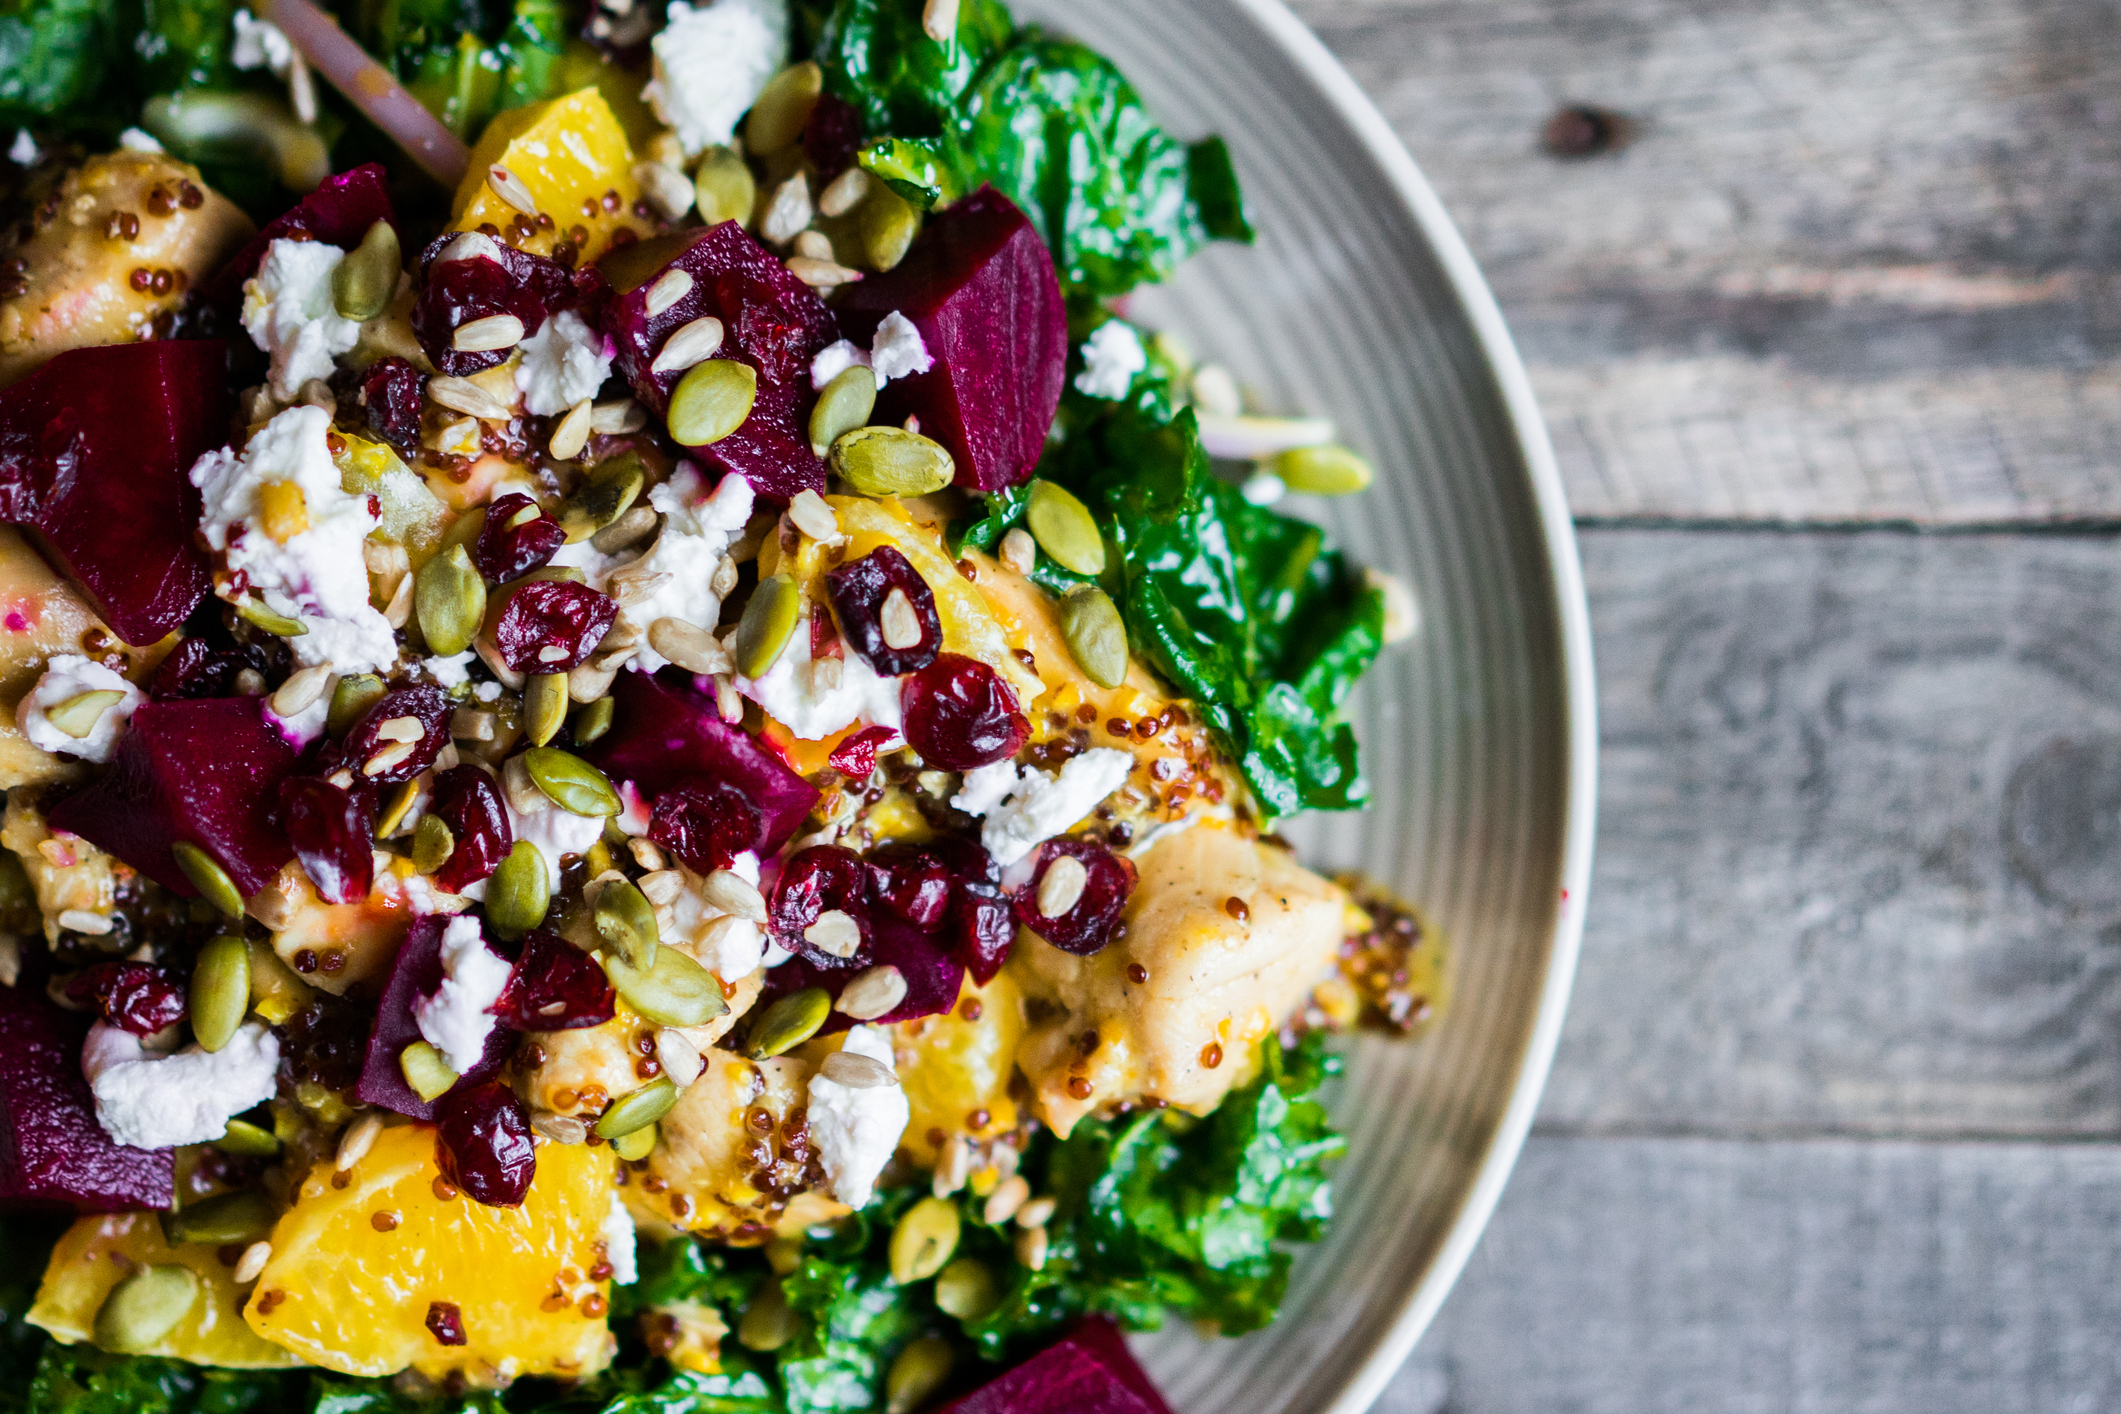 Beet salad with oranges, pumpkin seeds, and feta